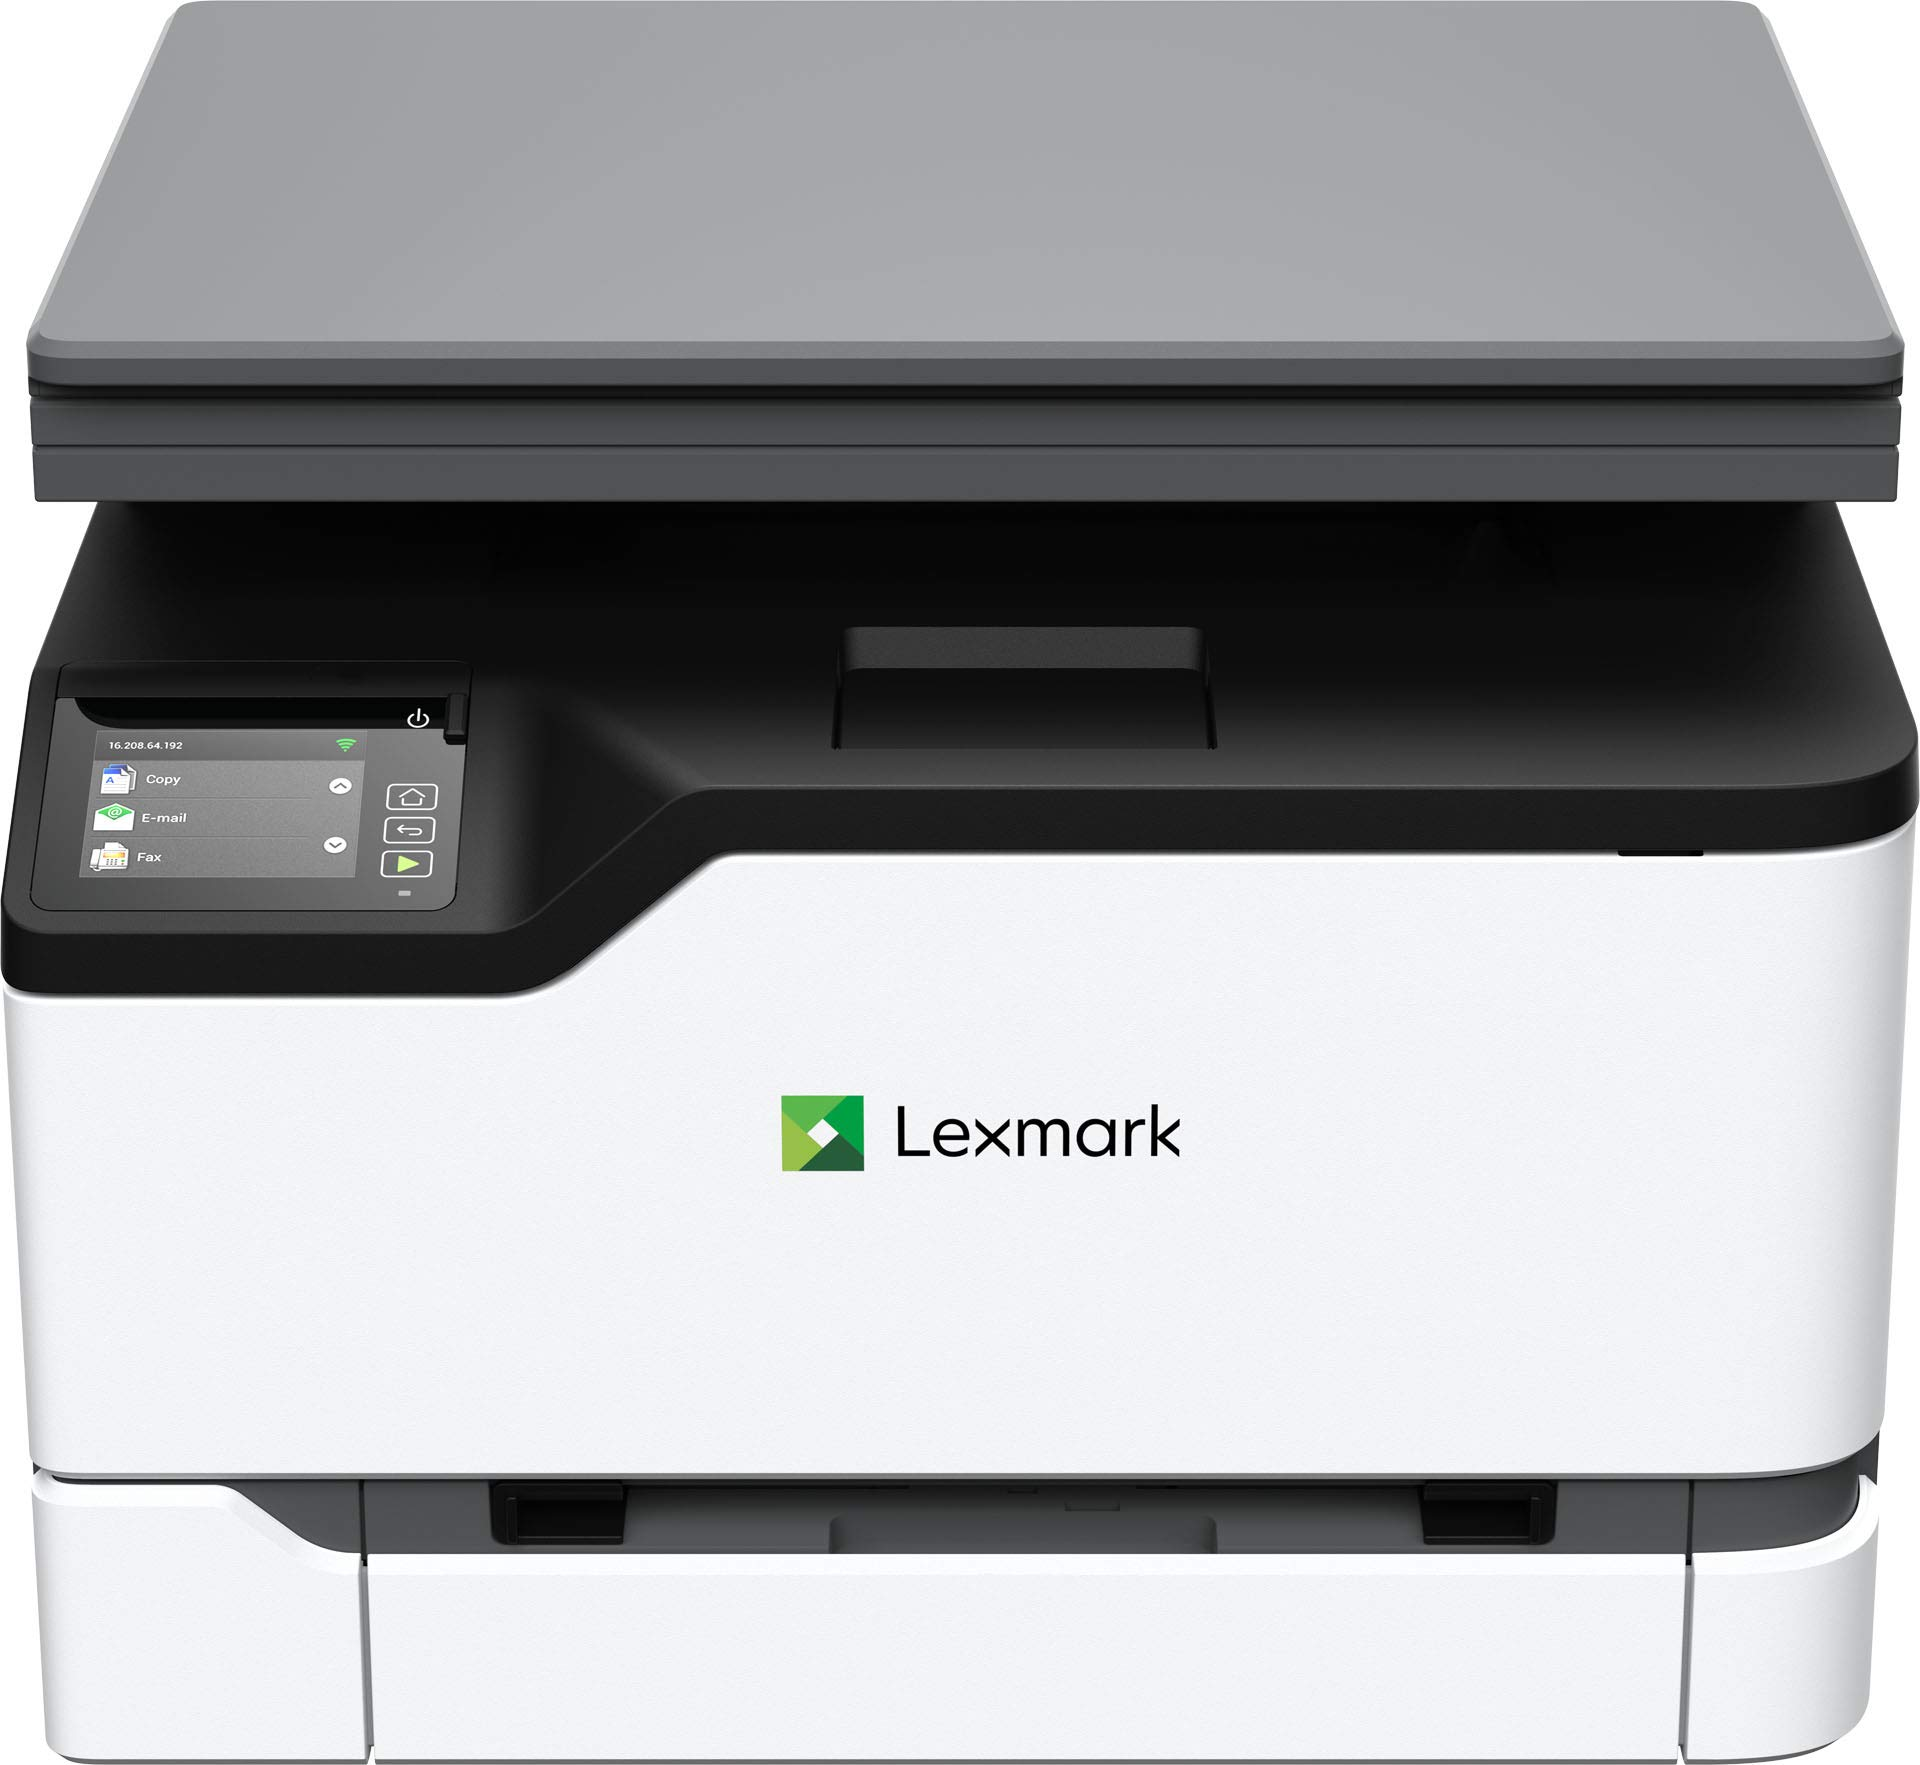 Lexmark MC3224dwe Color Multifunction Laser Printer with Print, Copy, Scan, and Wireless Capabilities, Two-Sided Printing with Full-Spectrum Security and Prints Up to 24 ppm (40N9040) by Lexmark (Image #1)